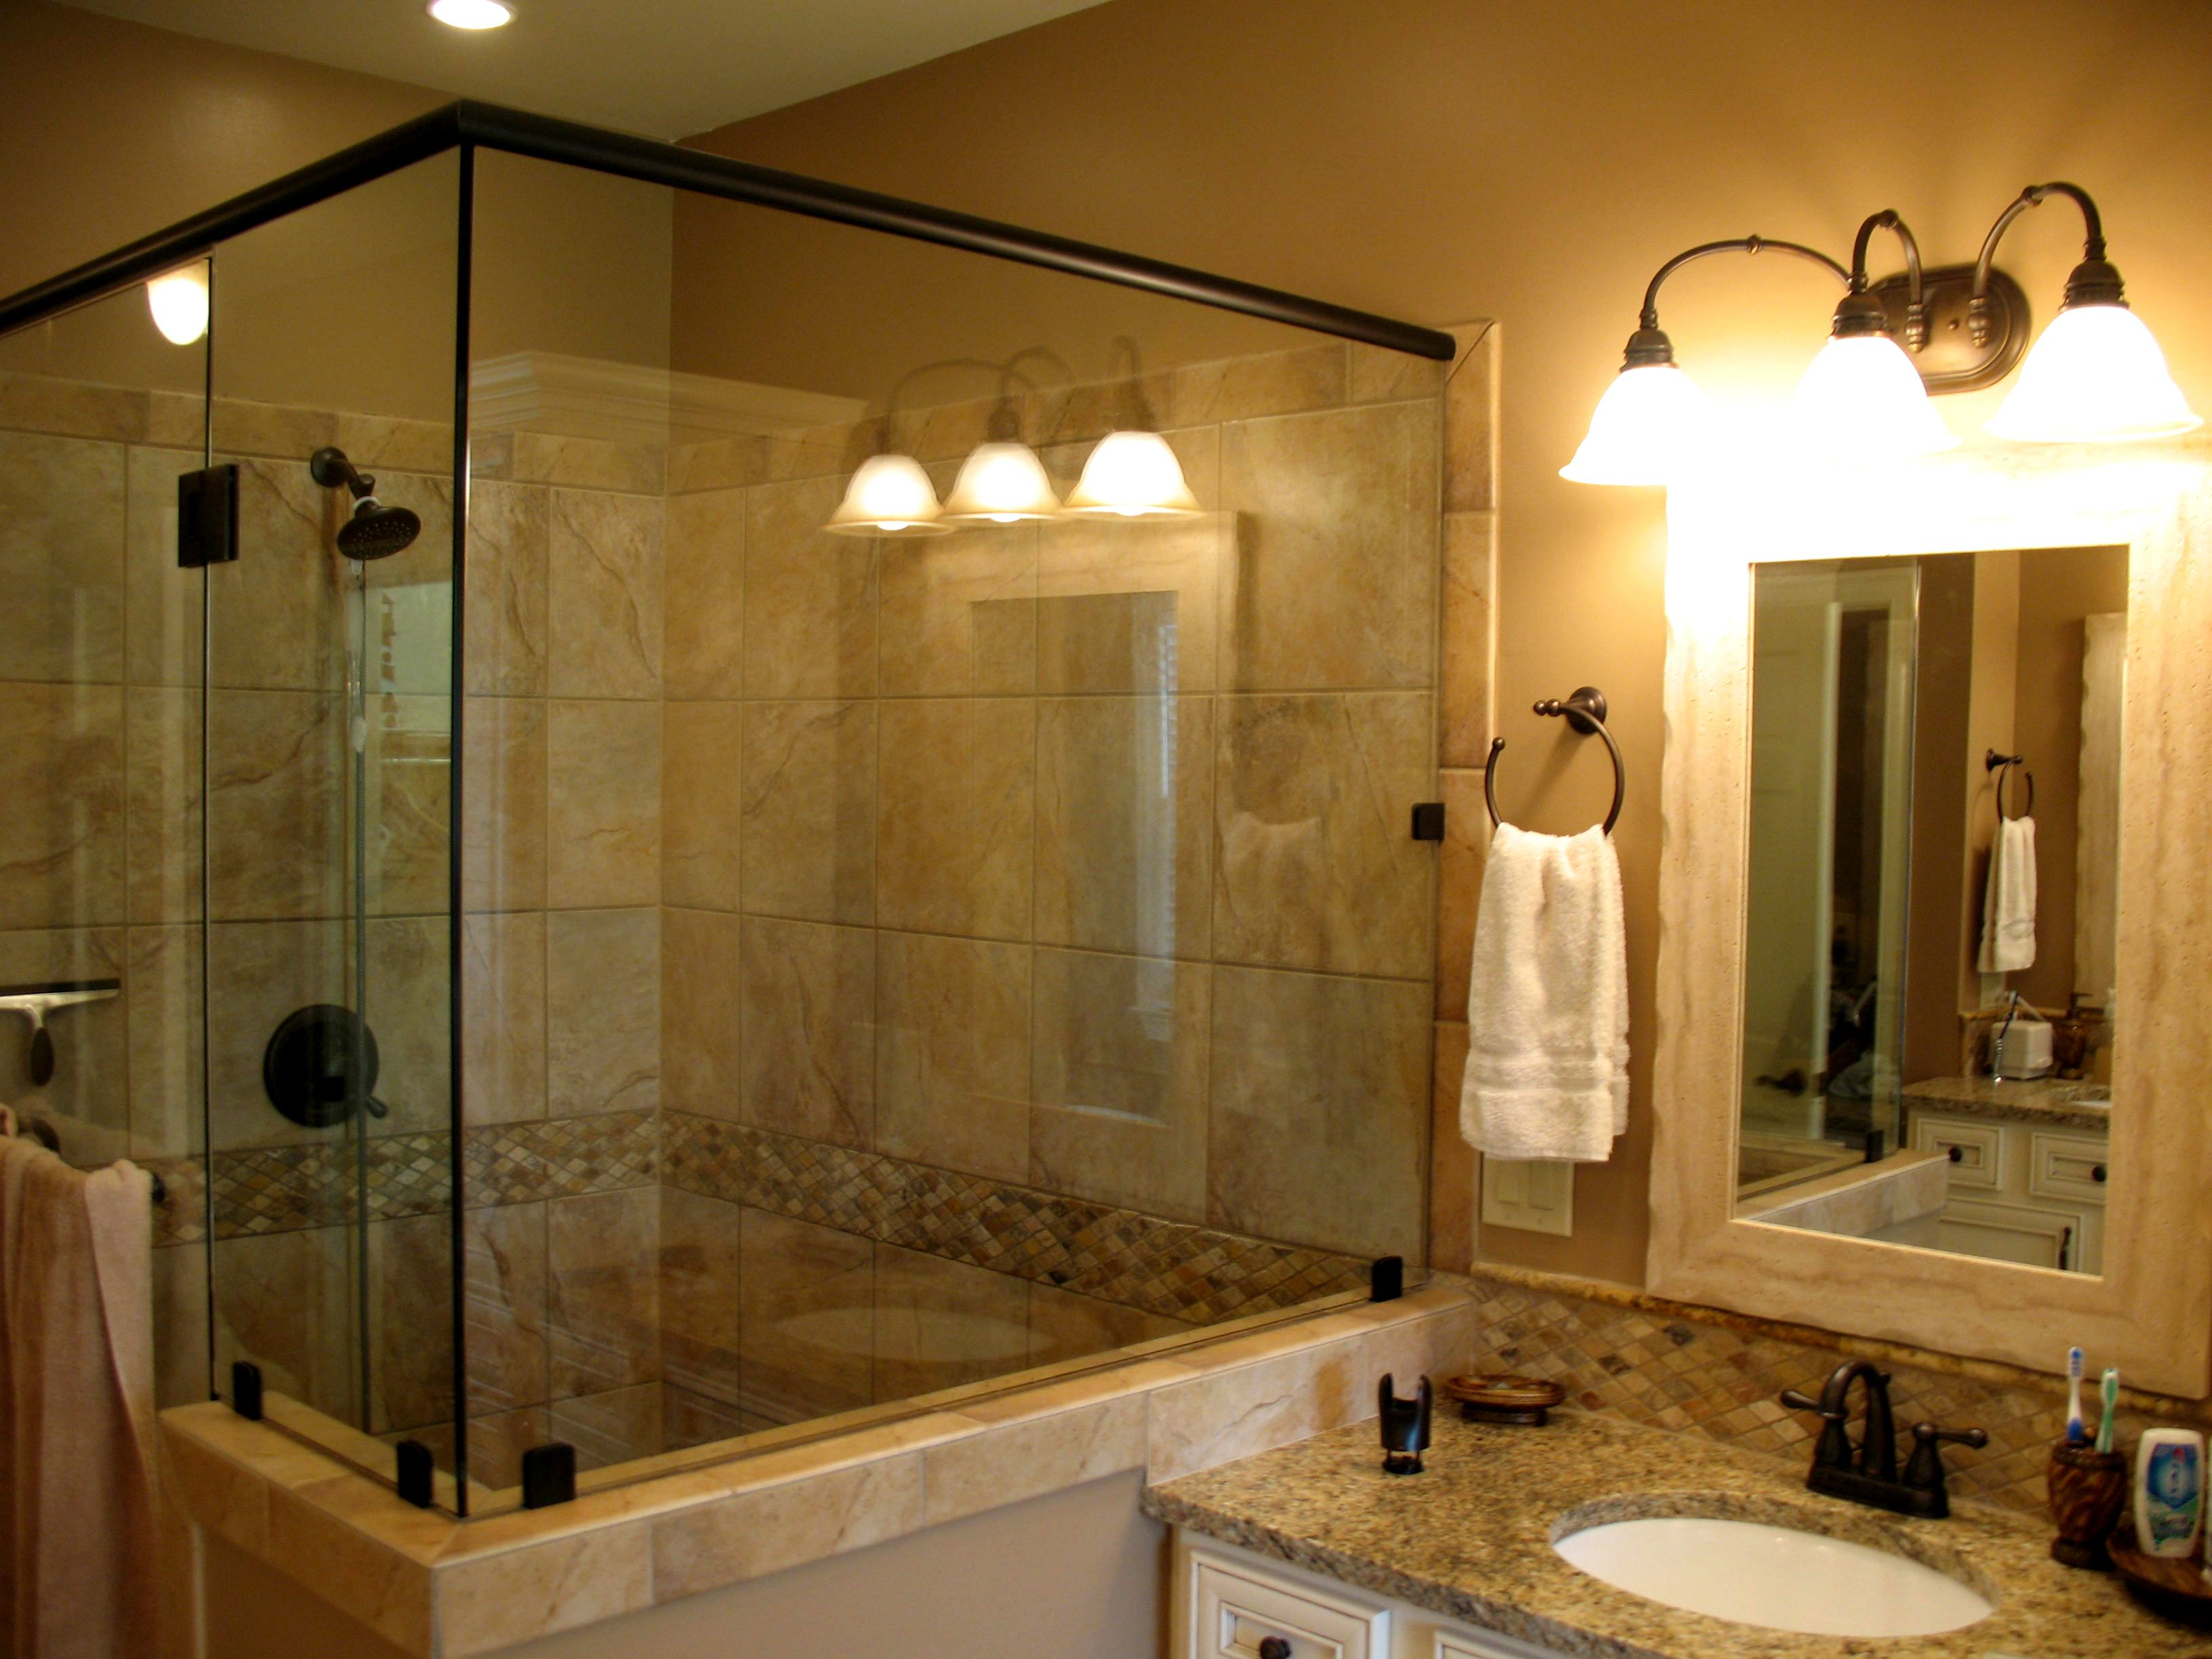 Top Master Bathroom Shower Remodel Ideas 3264 x 2448 · 551 kB · jpeg